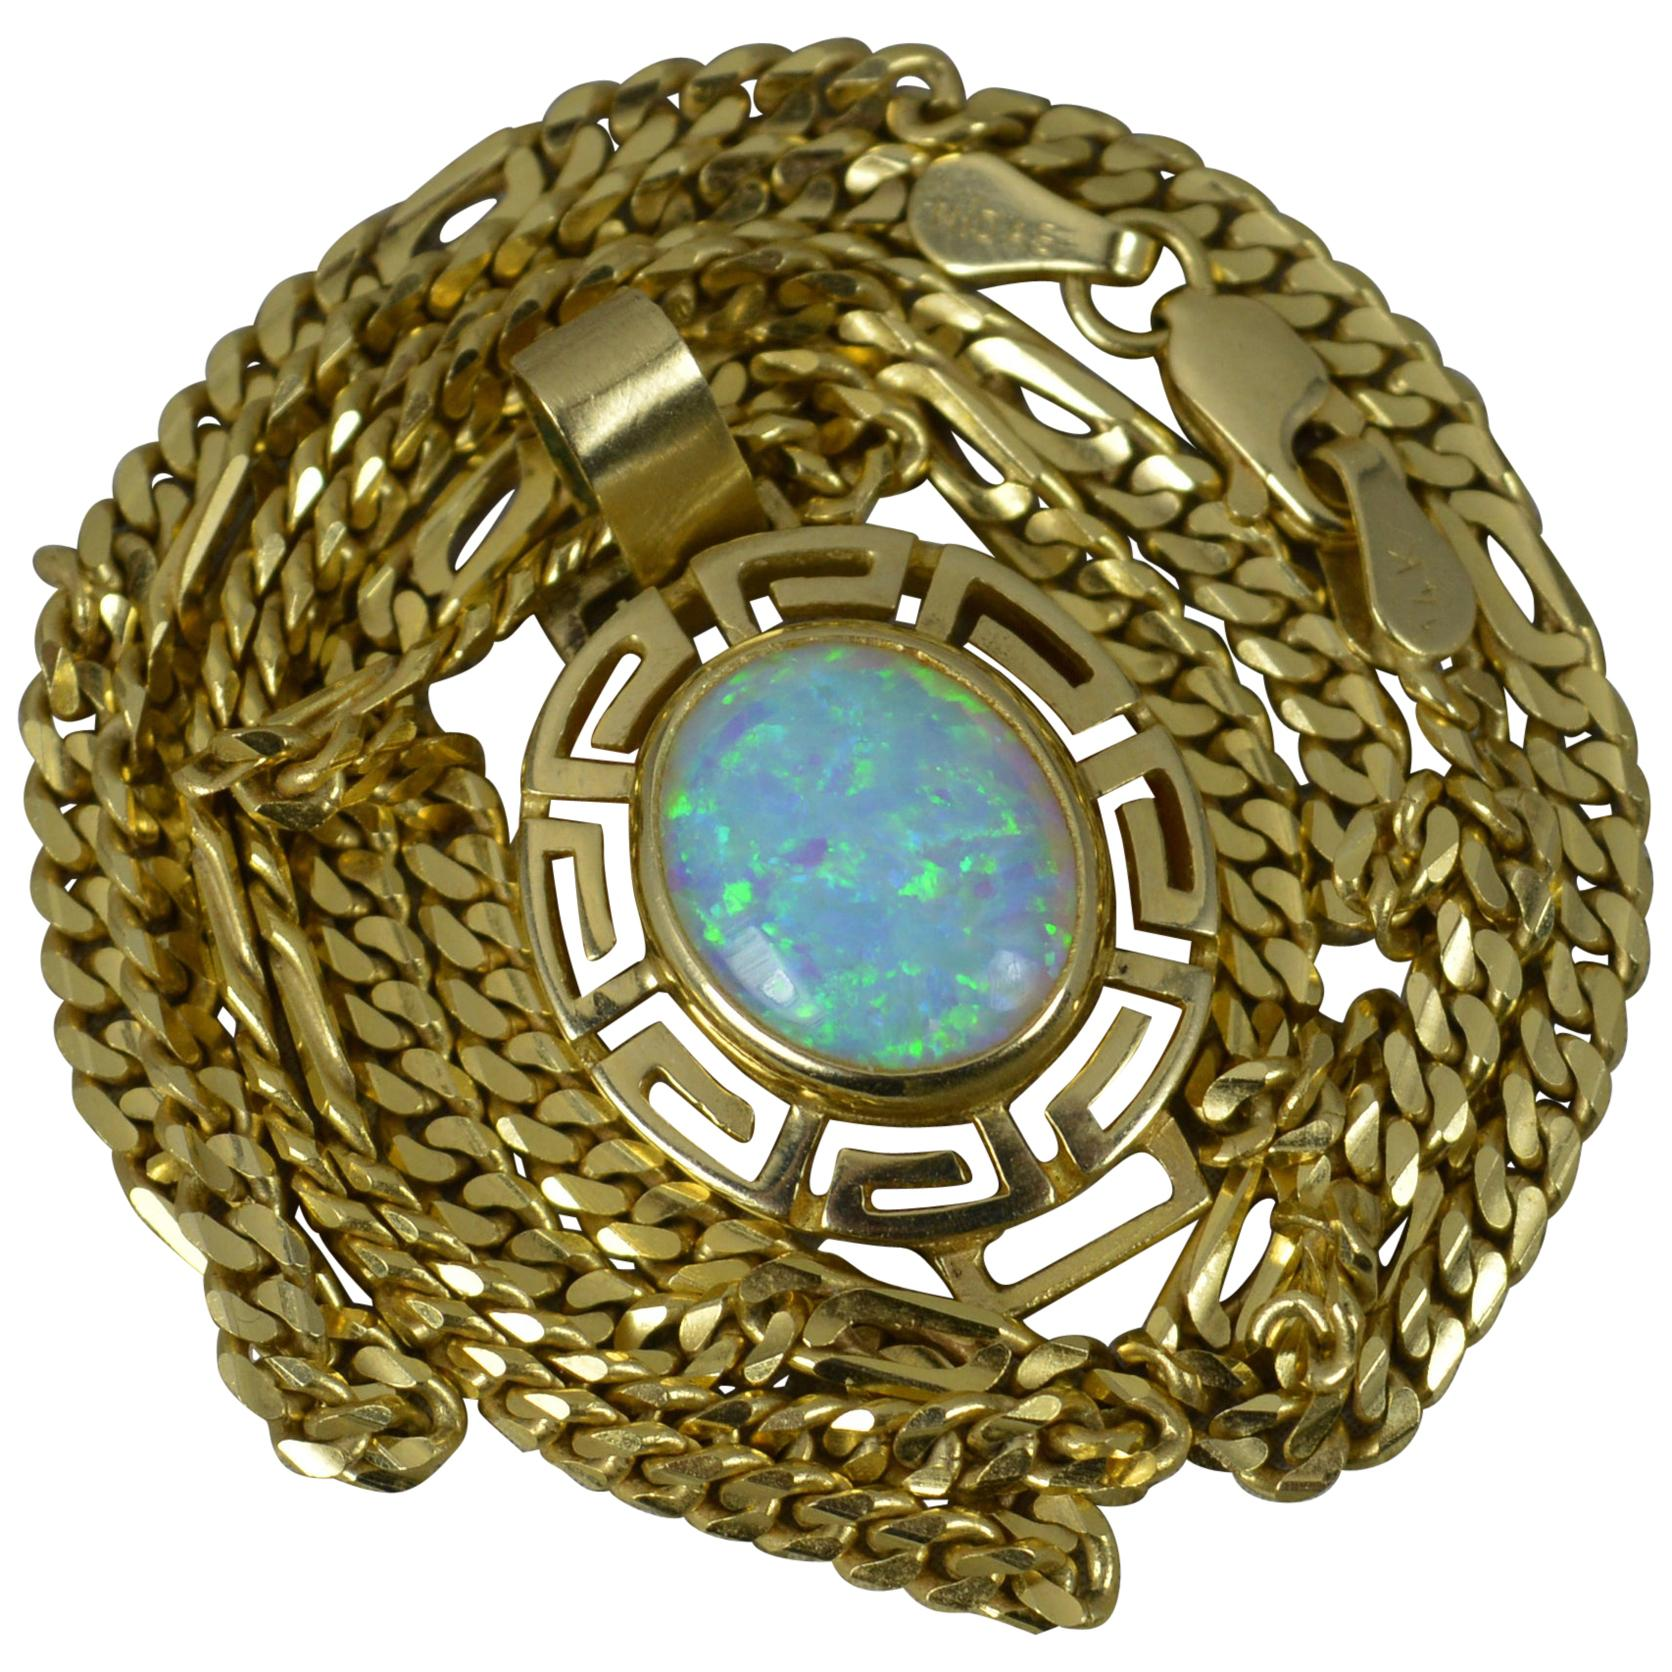 Heavy 14 Carat Yellow Gold and Opal Pendant and Chain